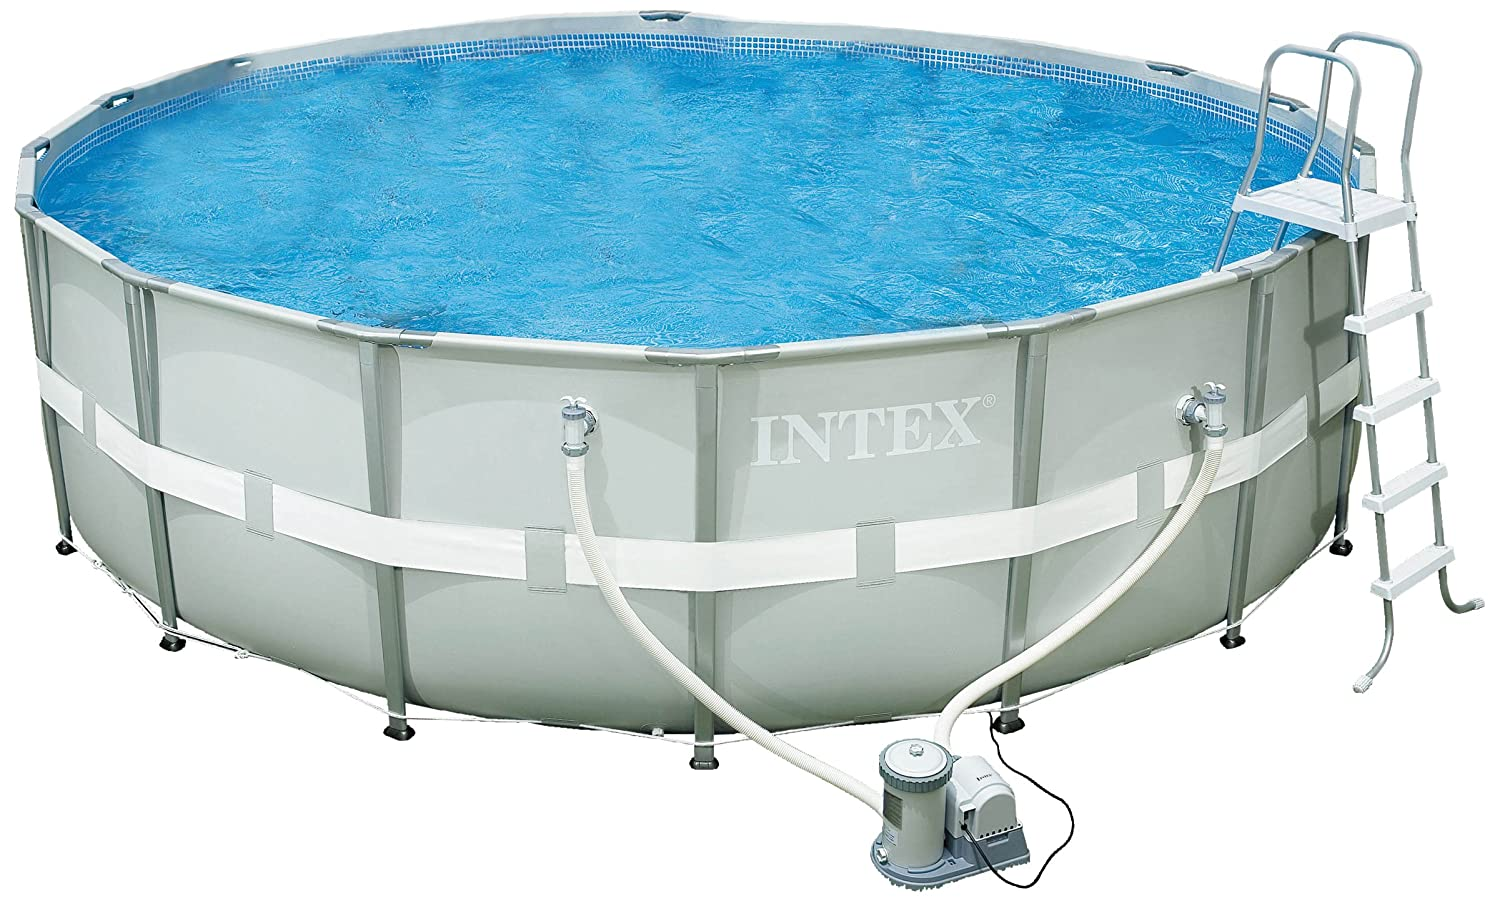 amazoncom intex 18 foot by 52 inch ultra frame pool set garden outdoor